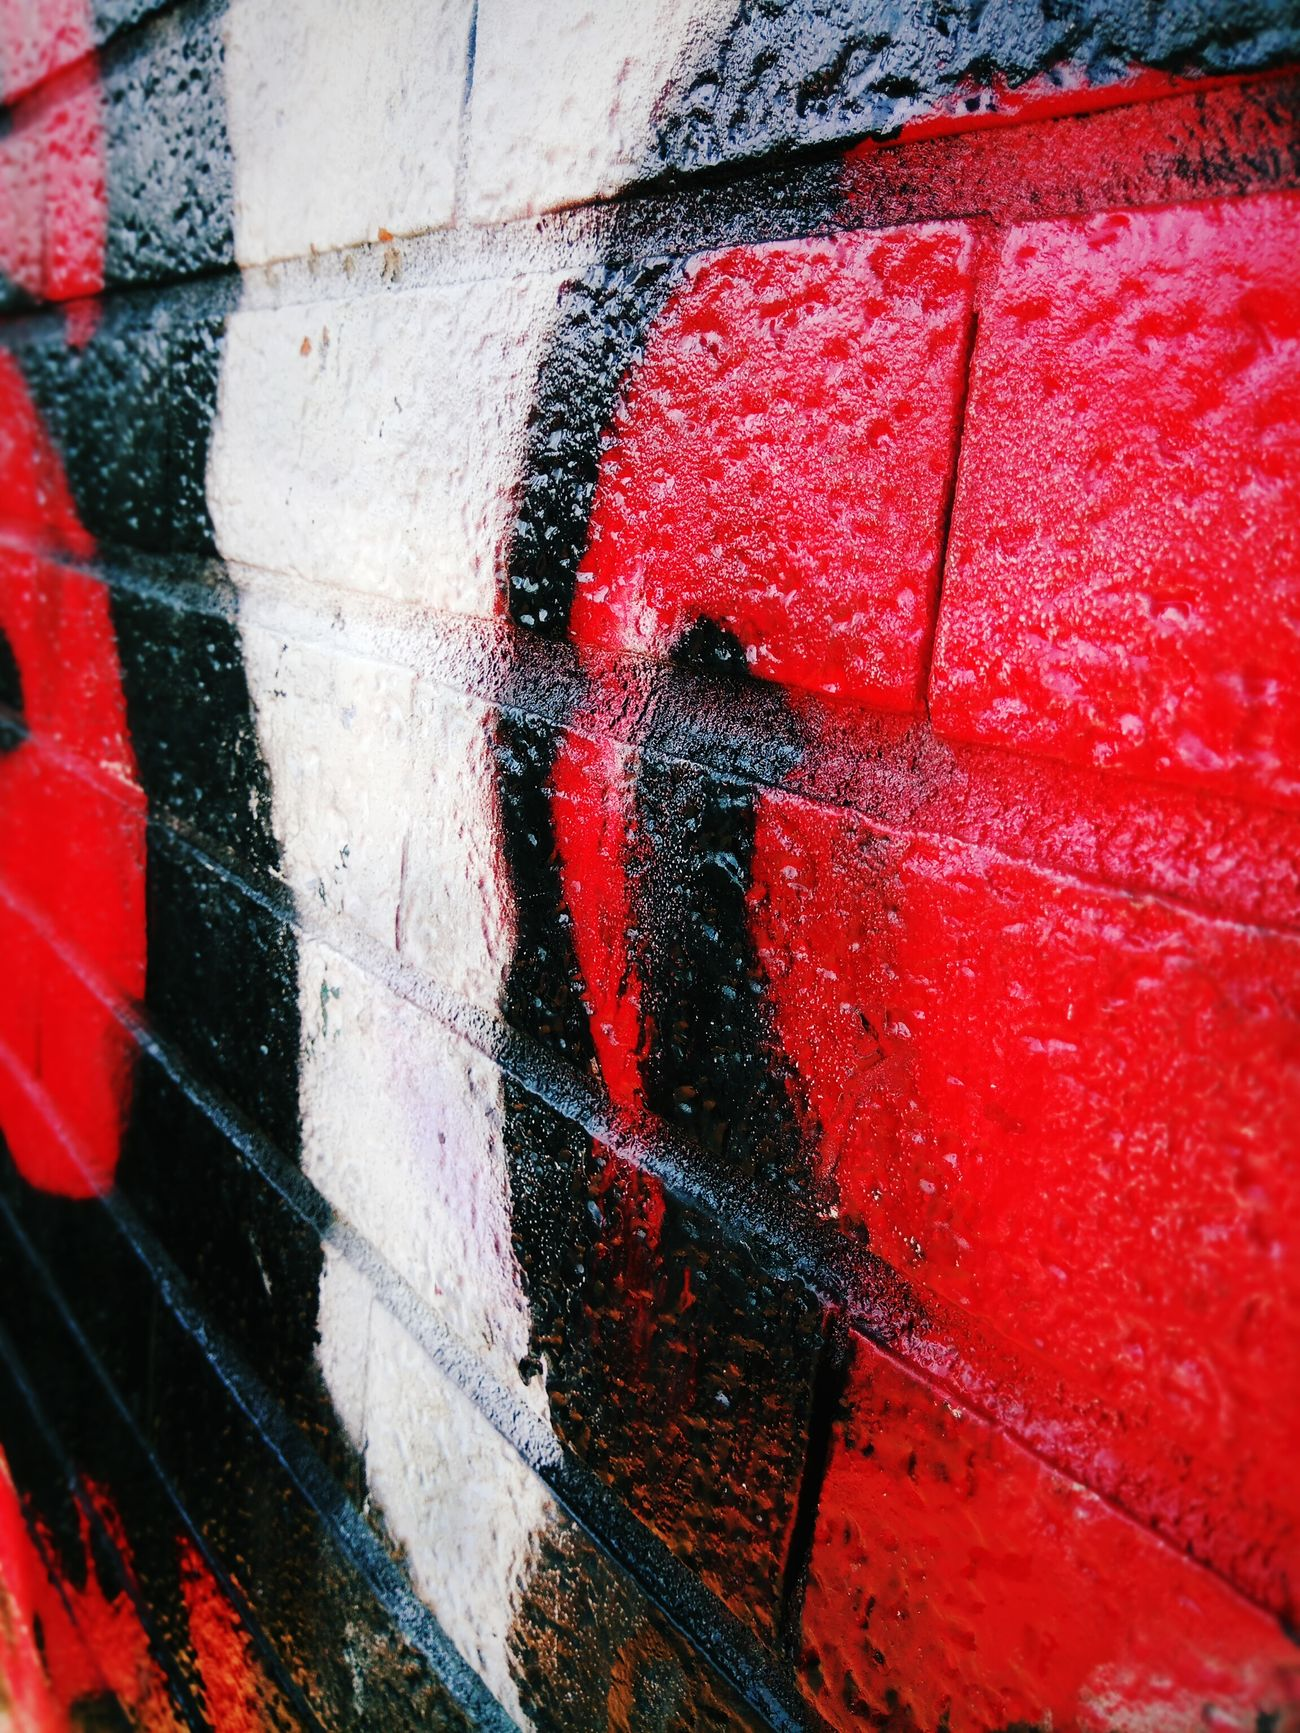 Red Textured  Paint Close-up Backgrounds Outdoors Day No People Red Color 🎈 Red Color Drawings On The Wall Text On Wall Draw Drawing Drawings Drawing - Art Product Wall Wall Art Wall Art ♥ Wall Art Colorful Wall Art Photography Wall Art :)  Focus On Foreground